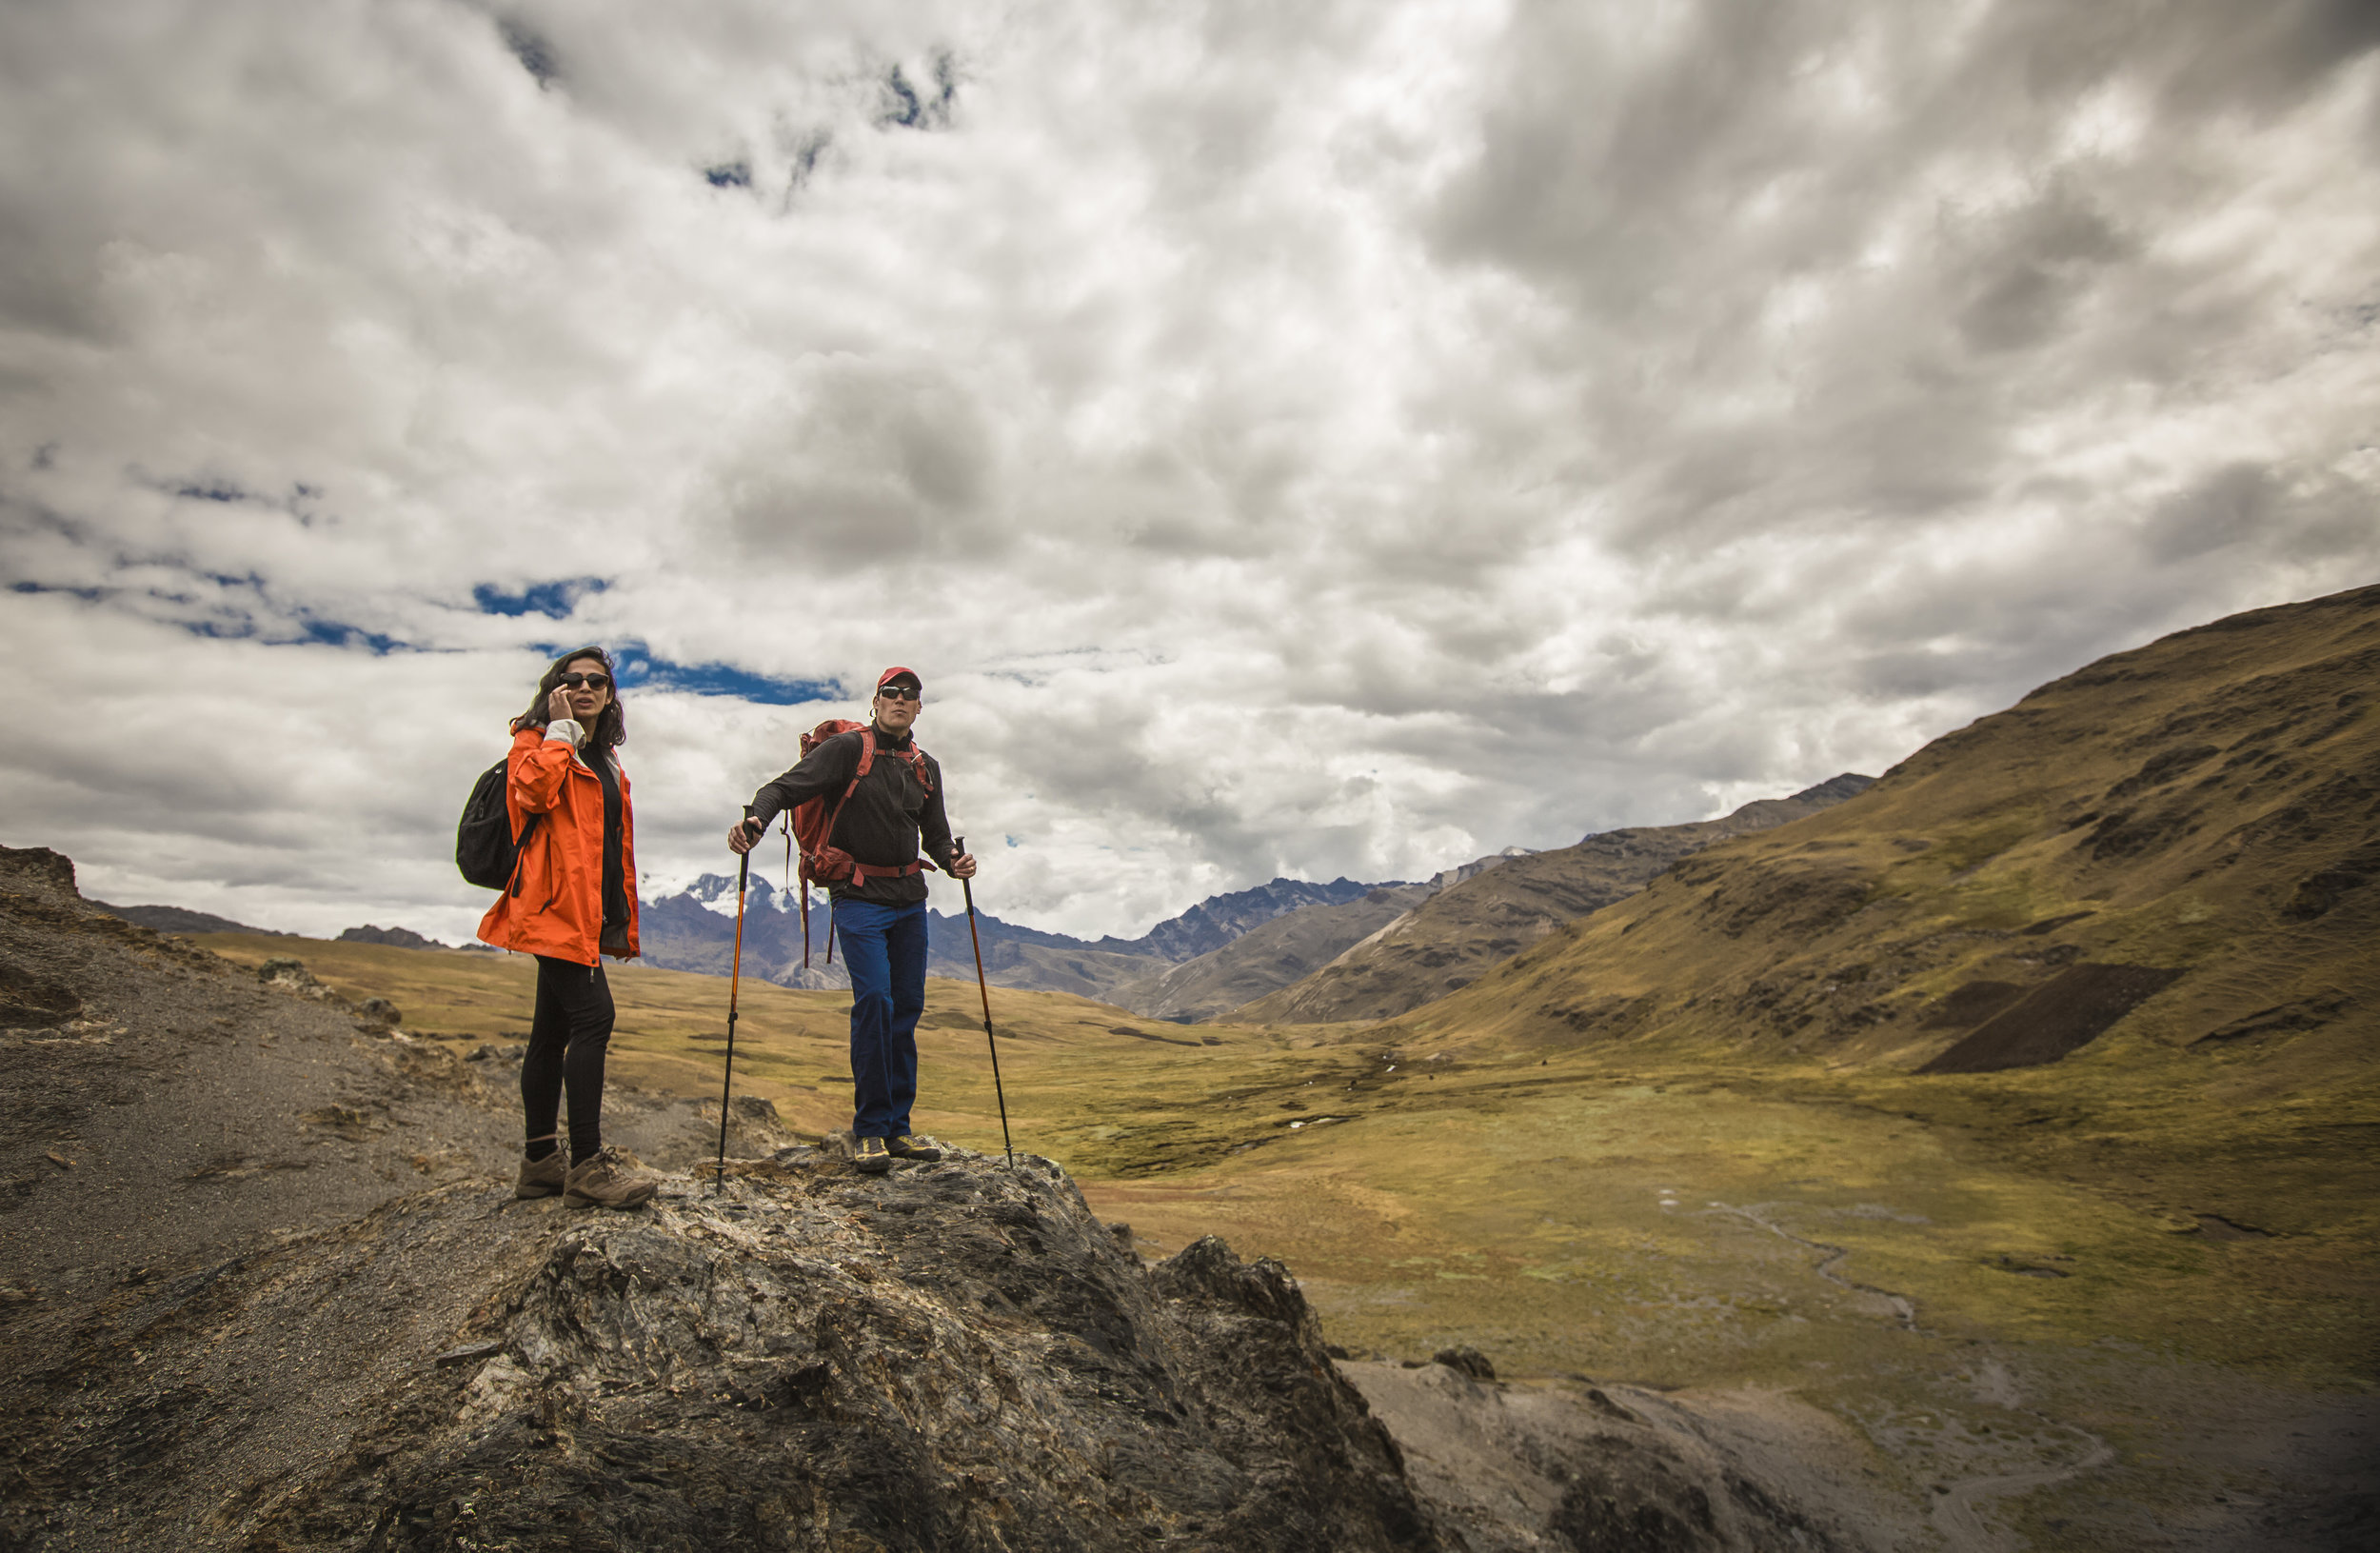 Trekking excursions with explora Sacred Valley, Peru